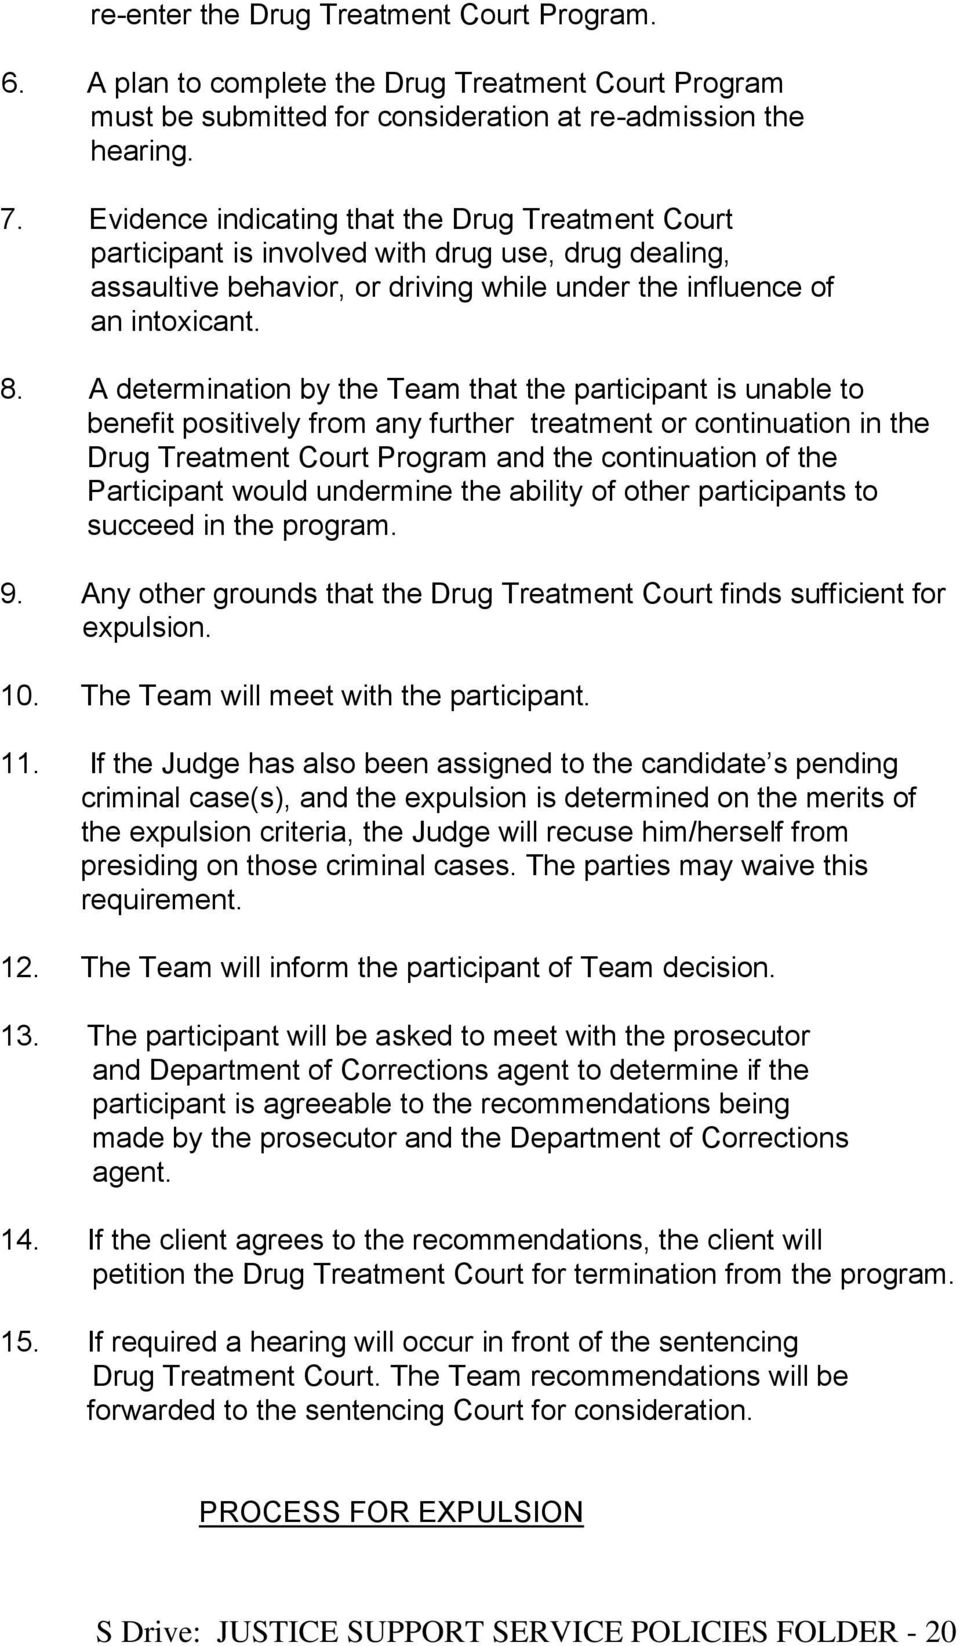 A determination by the Team that the participant is unable to benefit positively from any further treatment or continuation in the Drug Treatment Court Program and the continuation of the Participant